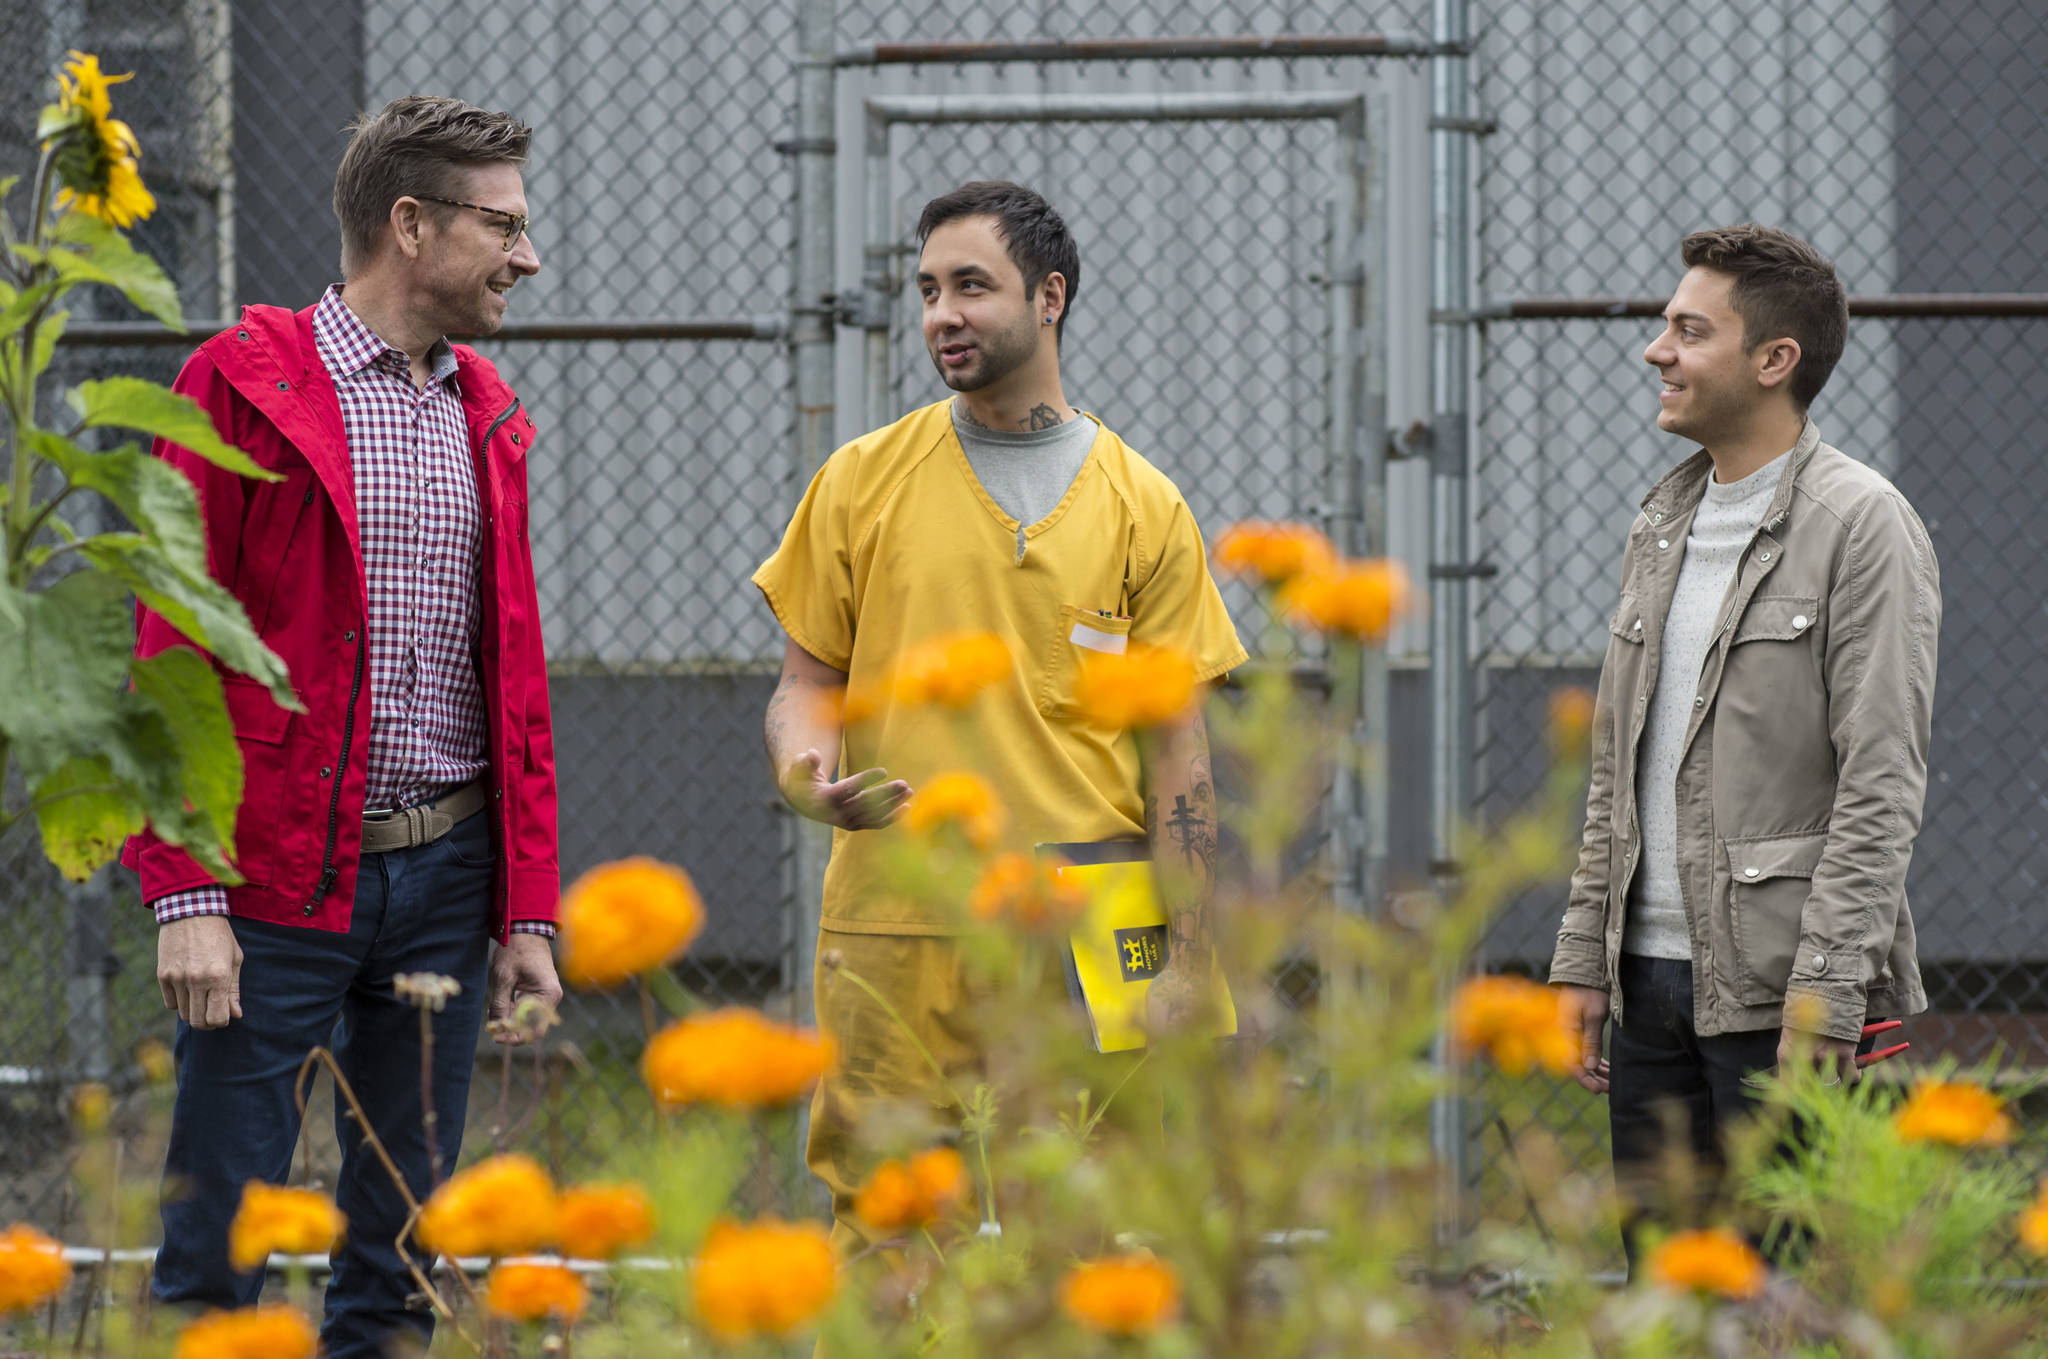 Jeremy Bauer, left, and Jason Clifton, right, of Frenchie's Floral Studio, talk with inmate Patrick Sweeney about a flower-growing collaboration at Lemon Creek Correctional Center on Friday, Aug. 24, 2018. (Michael Penn | Juneau Empire)